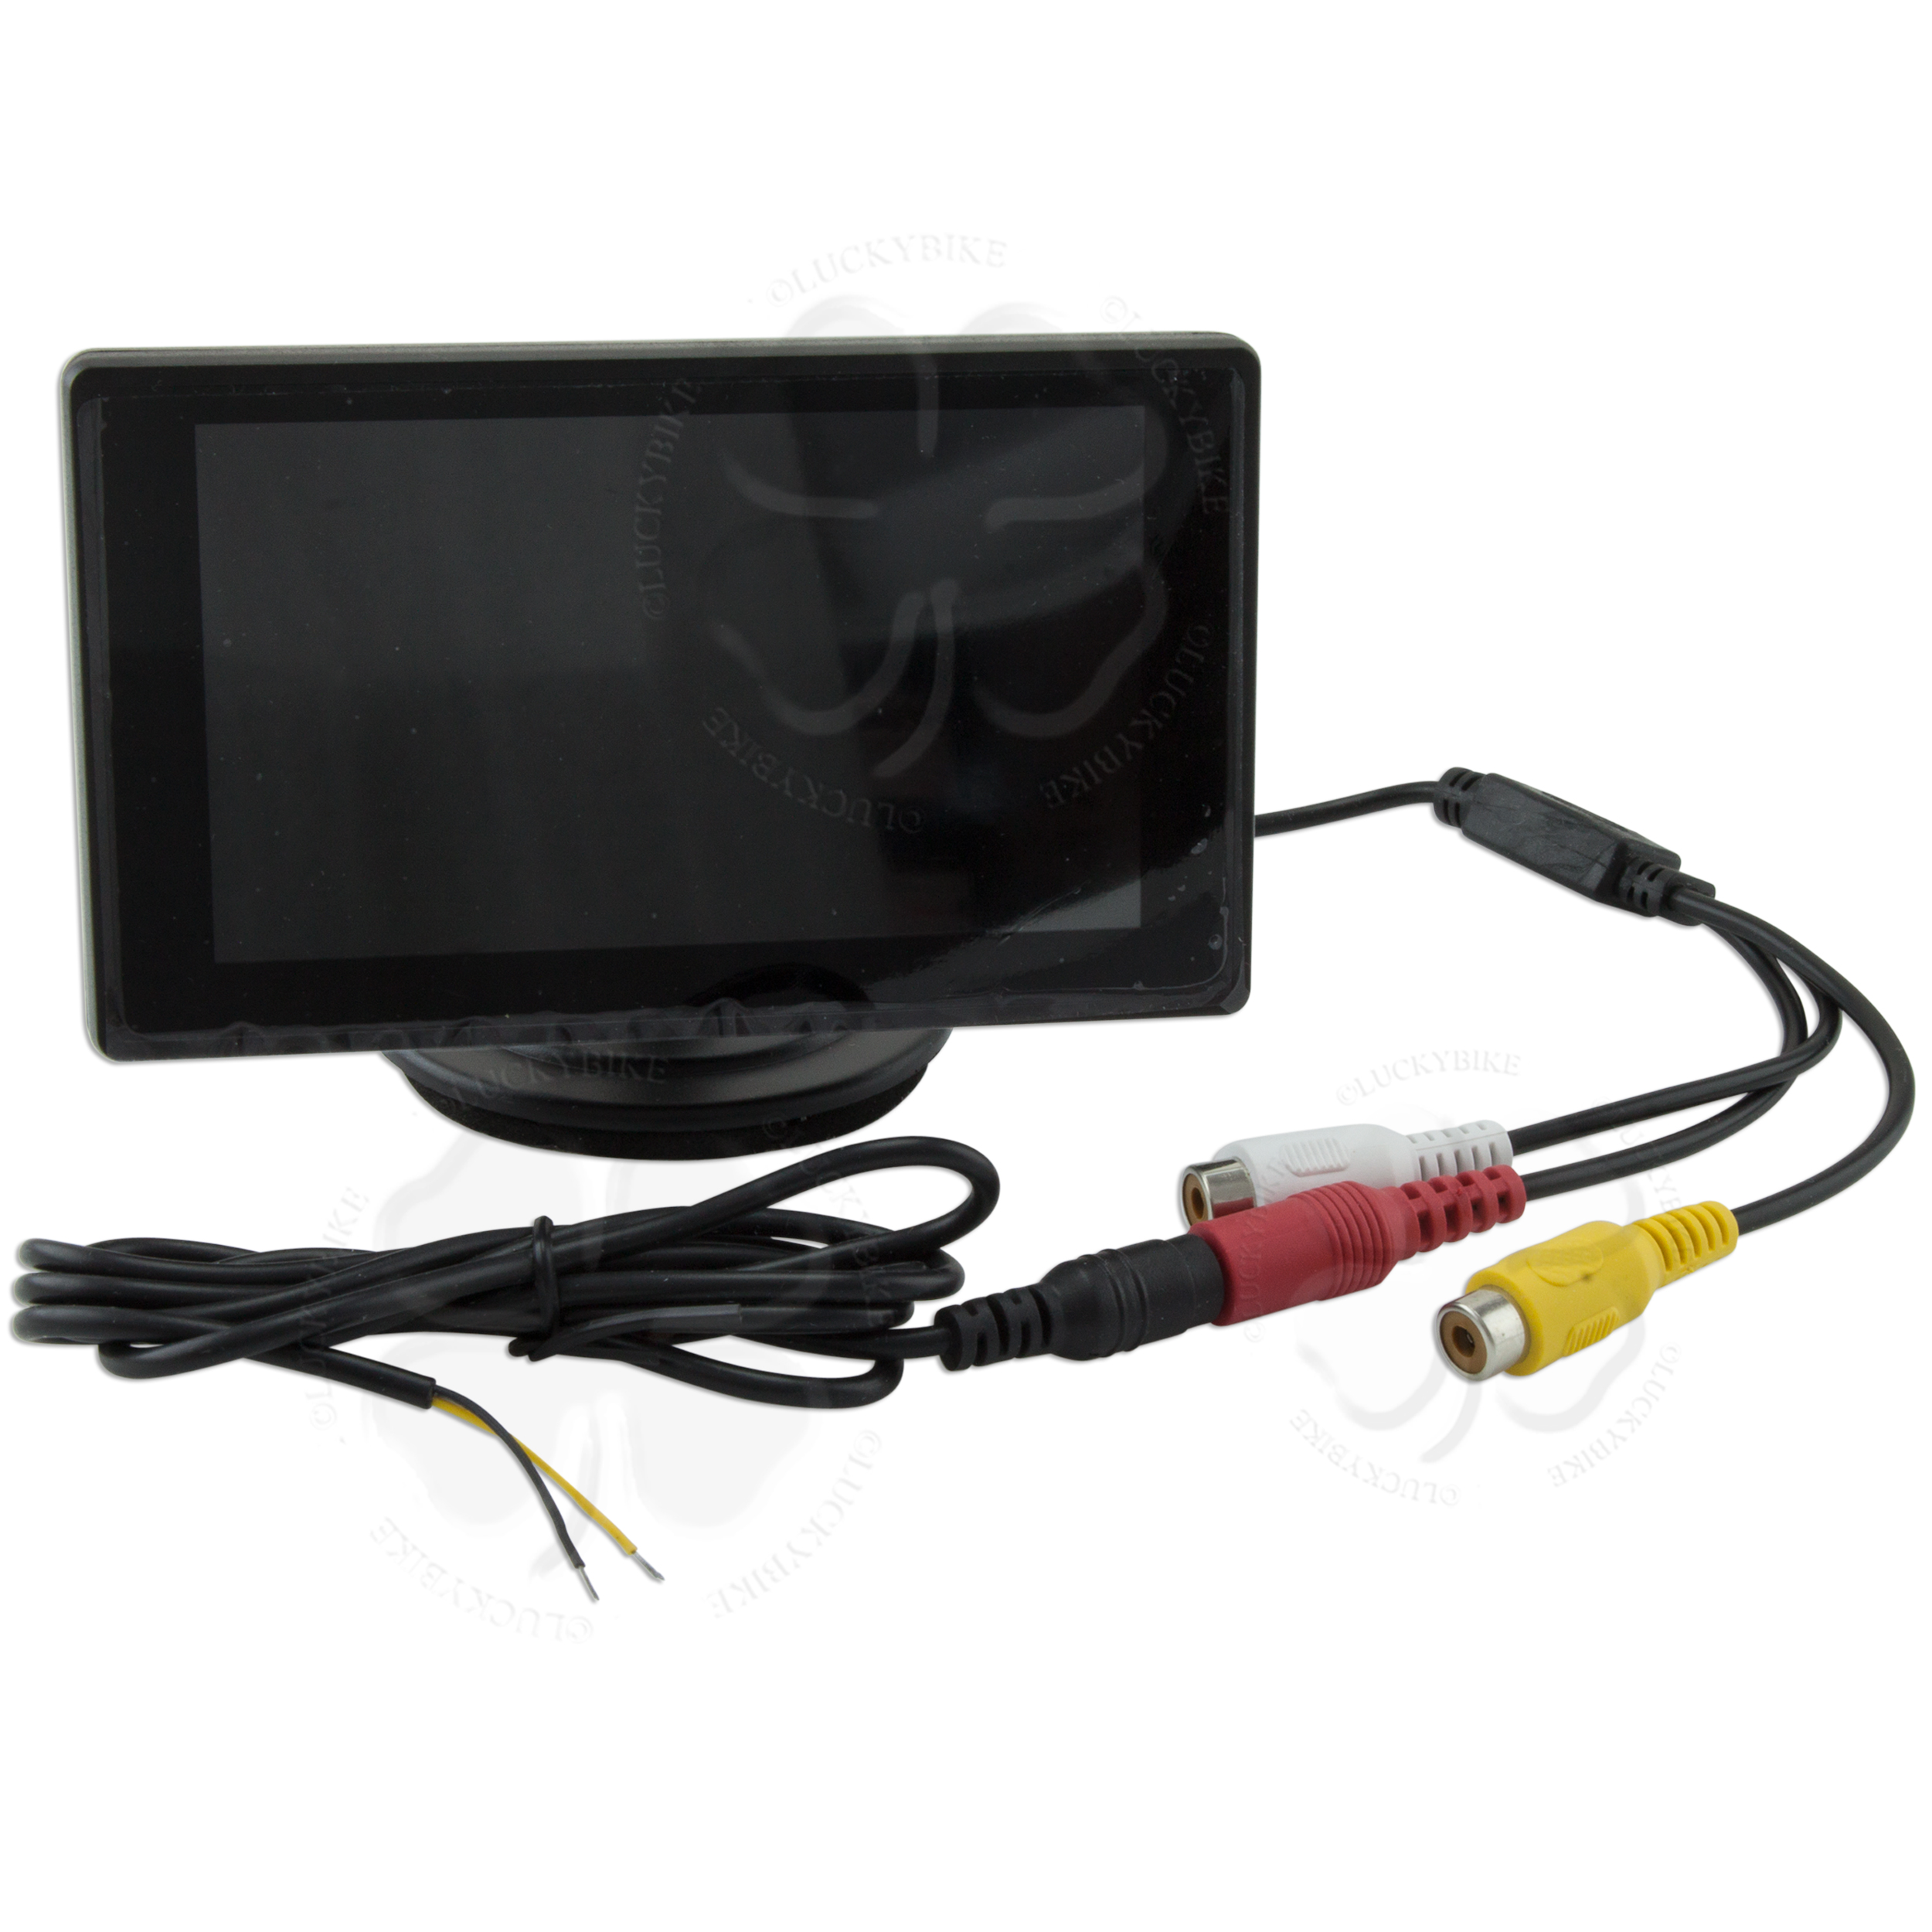 Camera System - Monitor 4.3 Inch